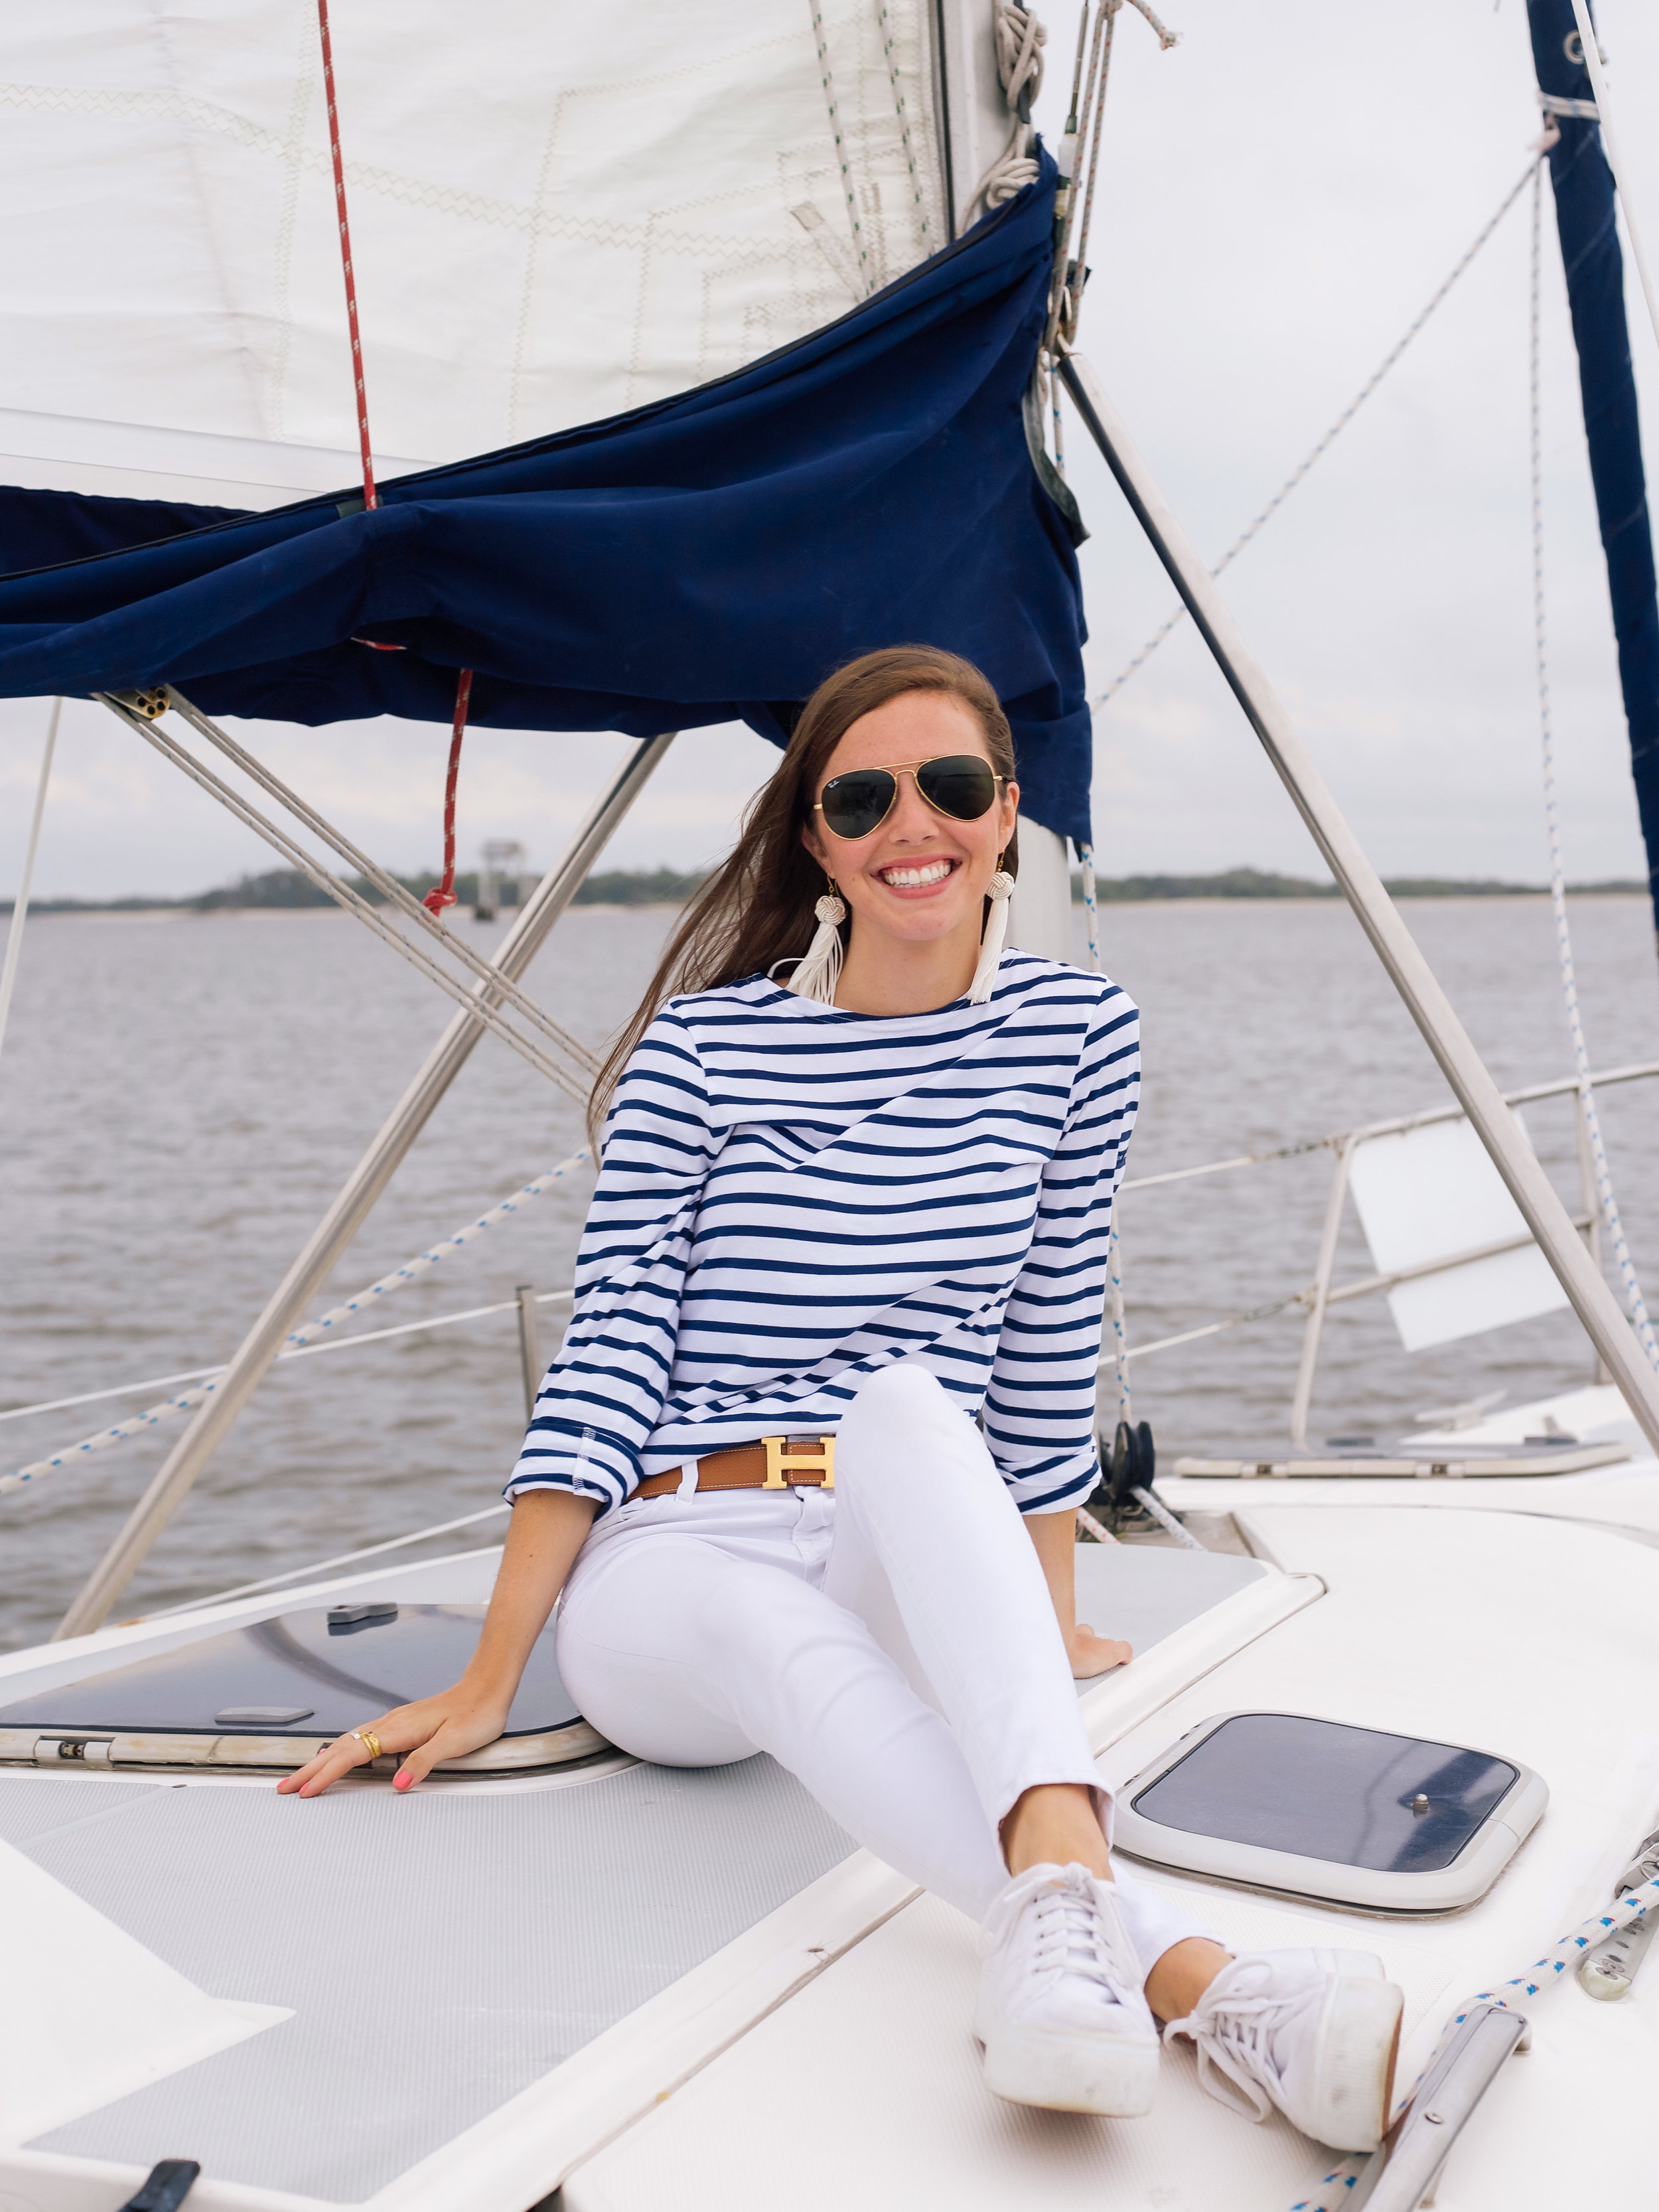 LCB STYLE FASHION BLOGGER AMELIA ISLAND SAILING (2 of 12).jpg